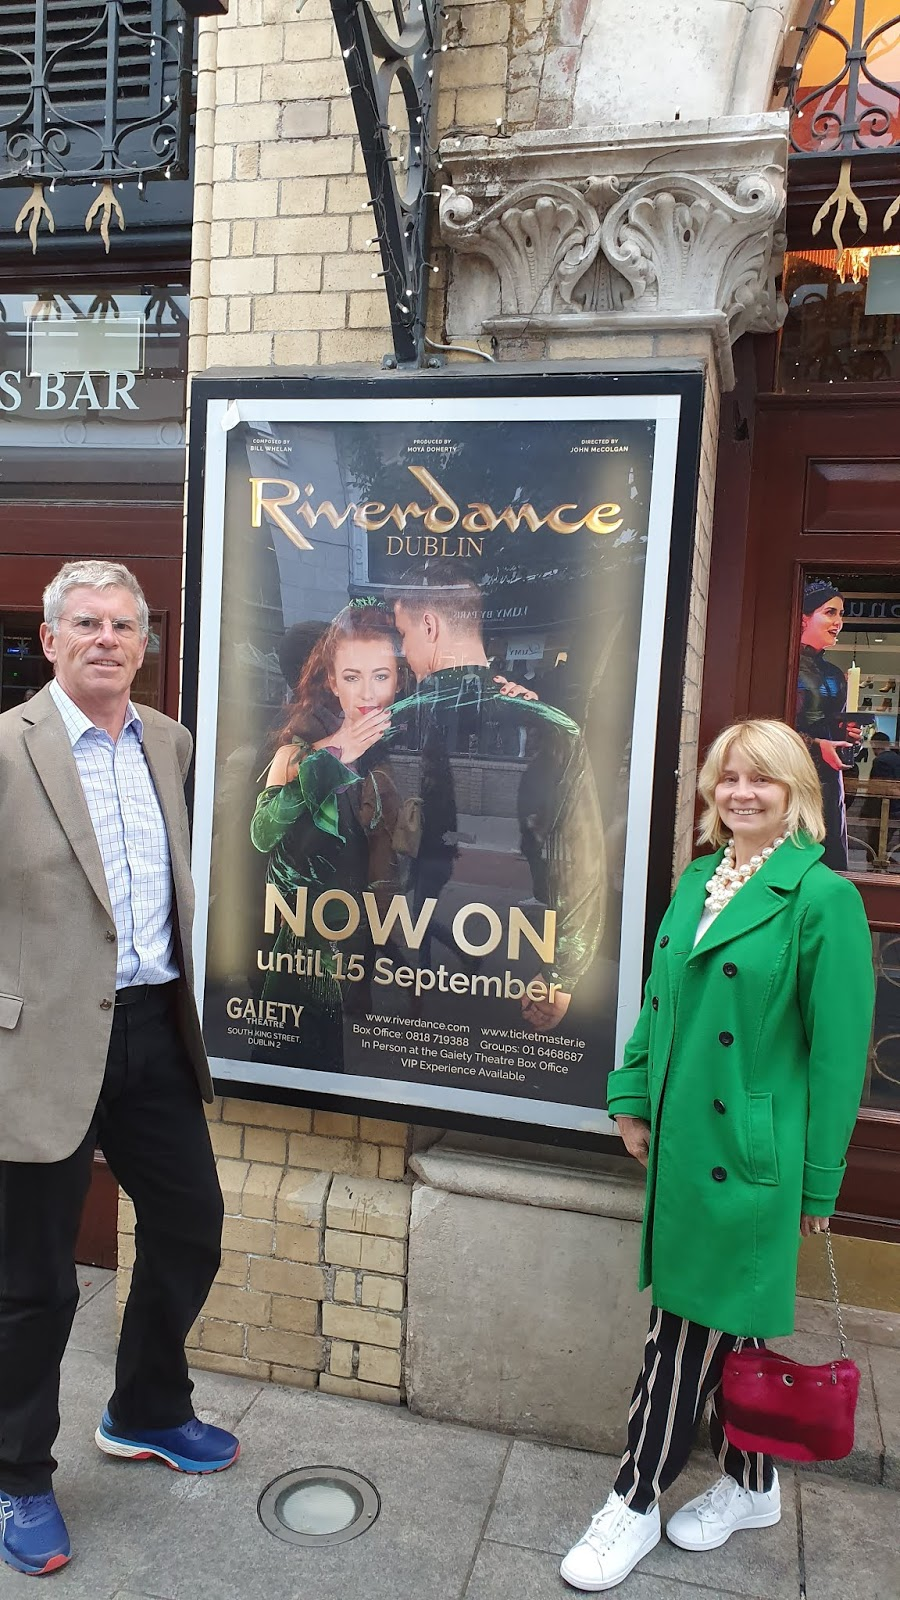 The Gaiety Theatre in Dublin and its sensational Riverdance show attended by Is This Mutton blogger and husband.